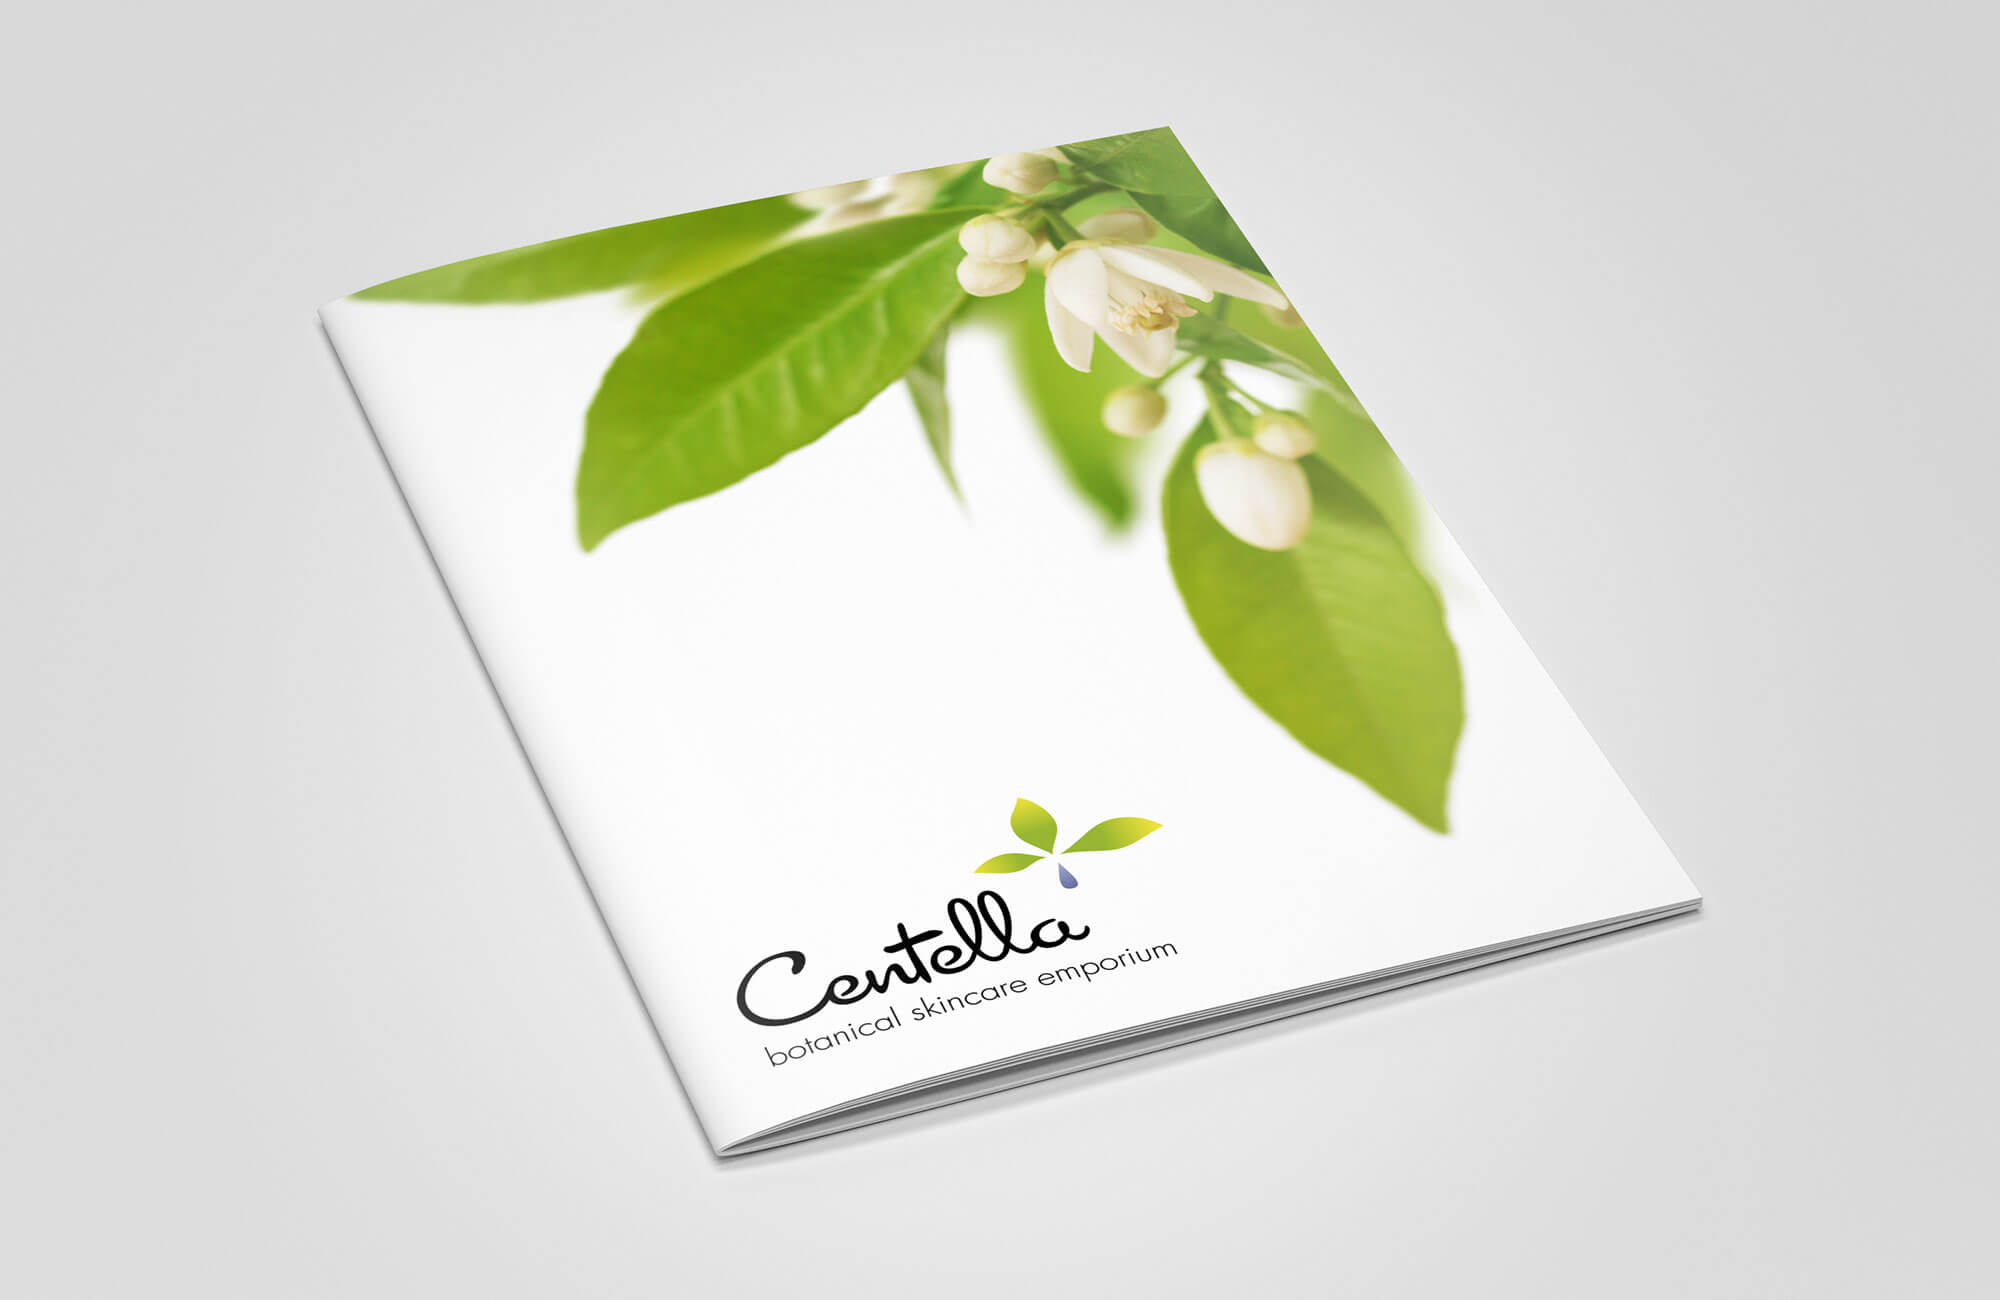 Centella Brochure Cover Design